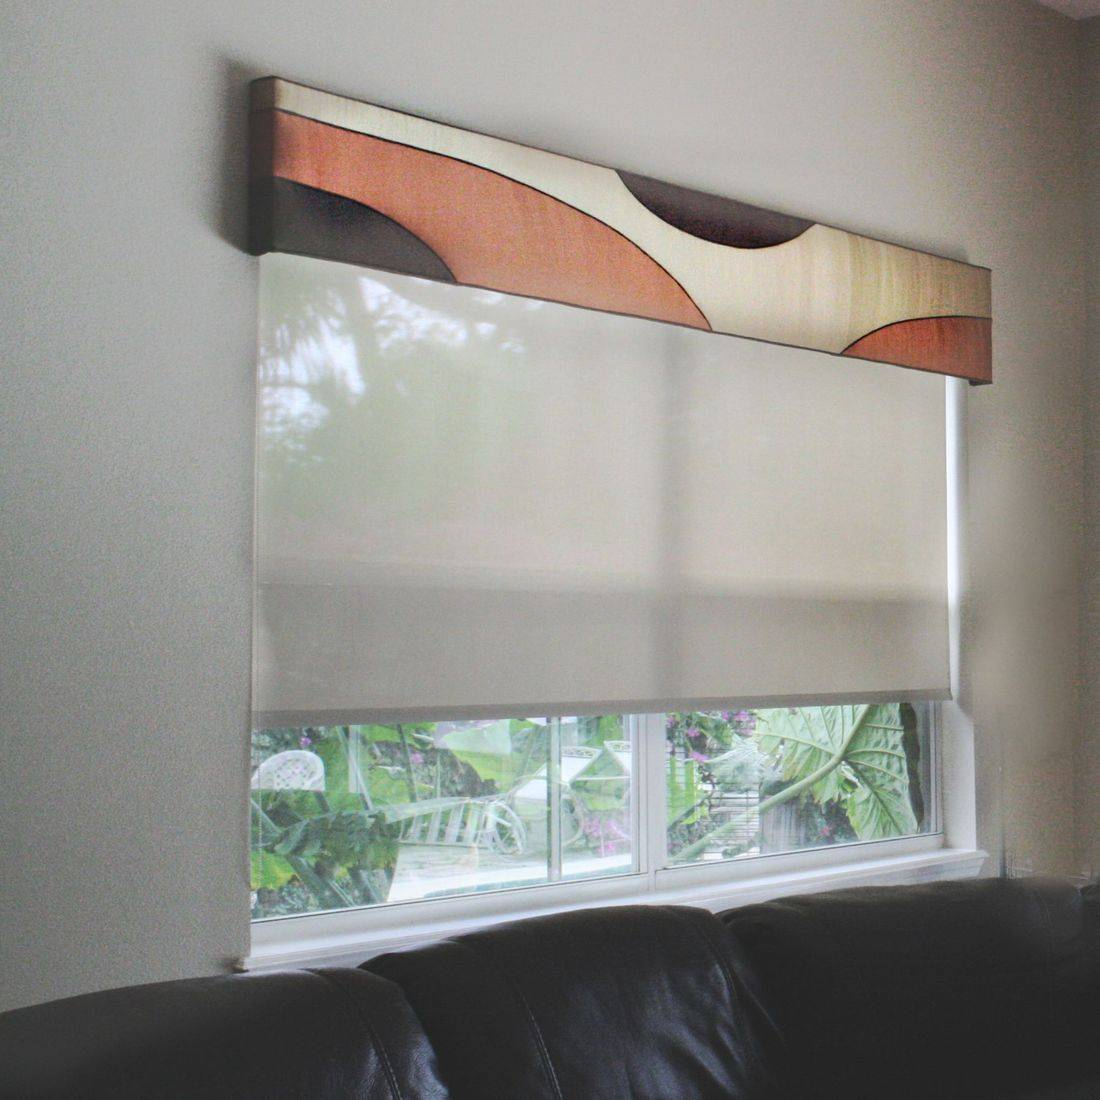 Motorized shades, designer cornice